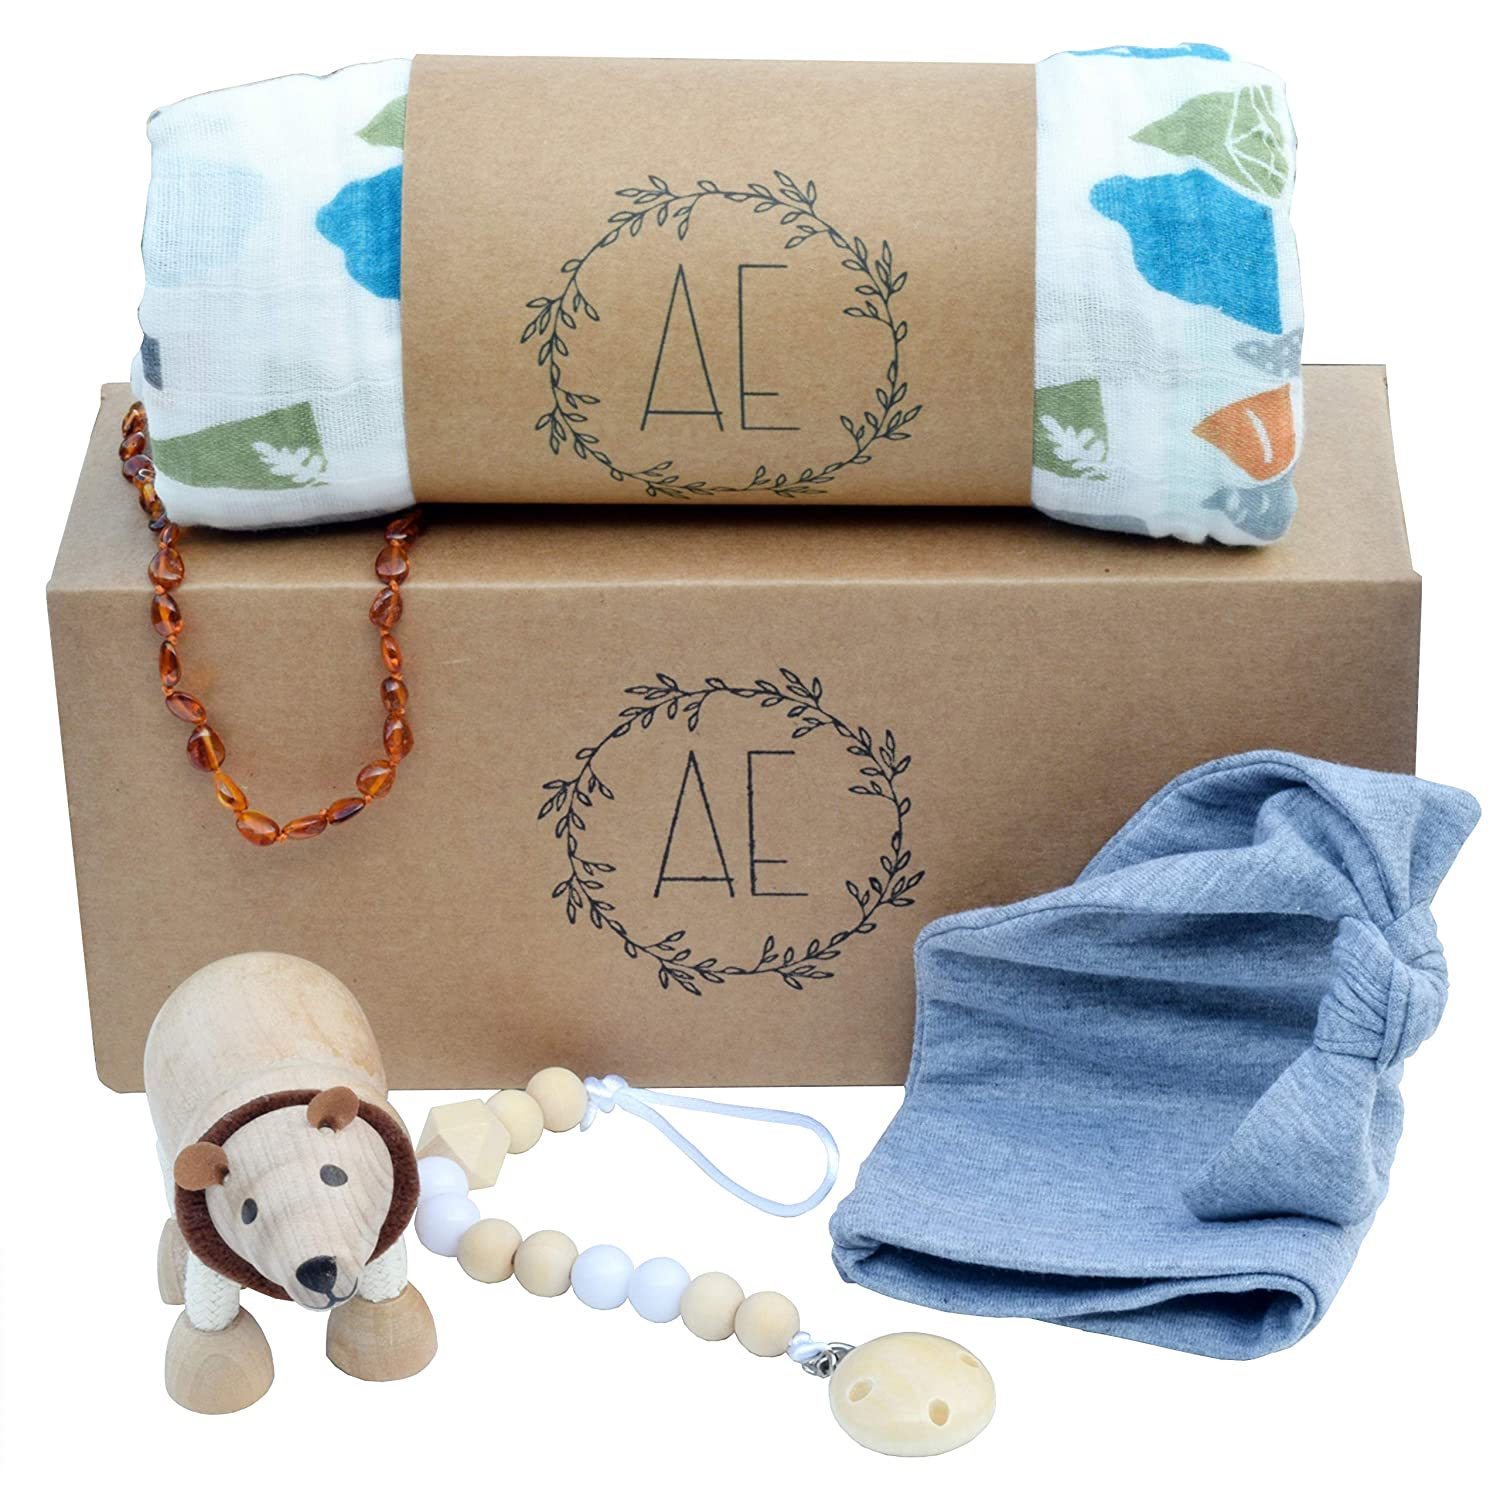 5 Piece Baby Boy Gift Set - Ready to GIVE - Unique Shower Gifts for Newborn Boys, Registry Essentials Basket, by After Eden Baby